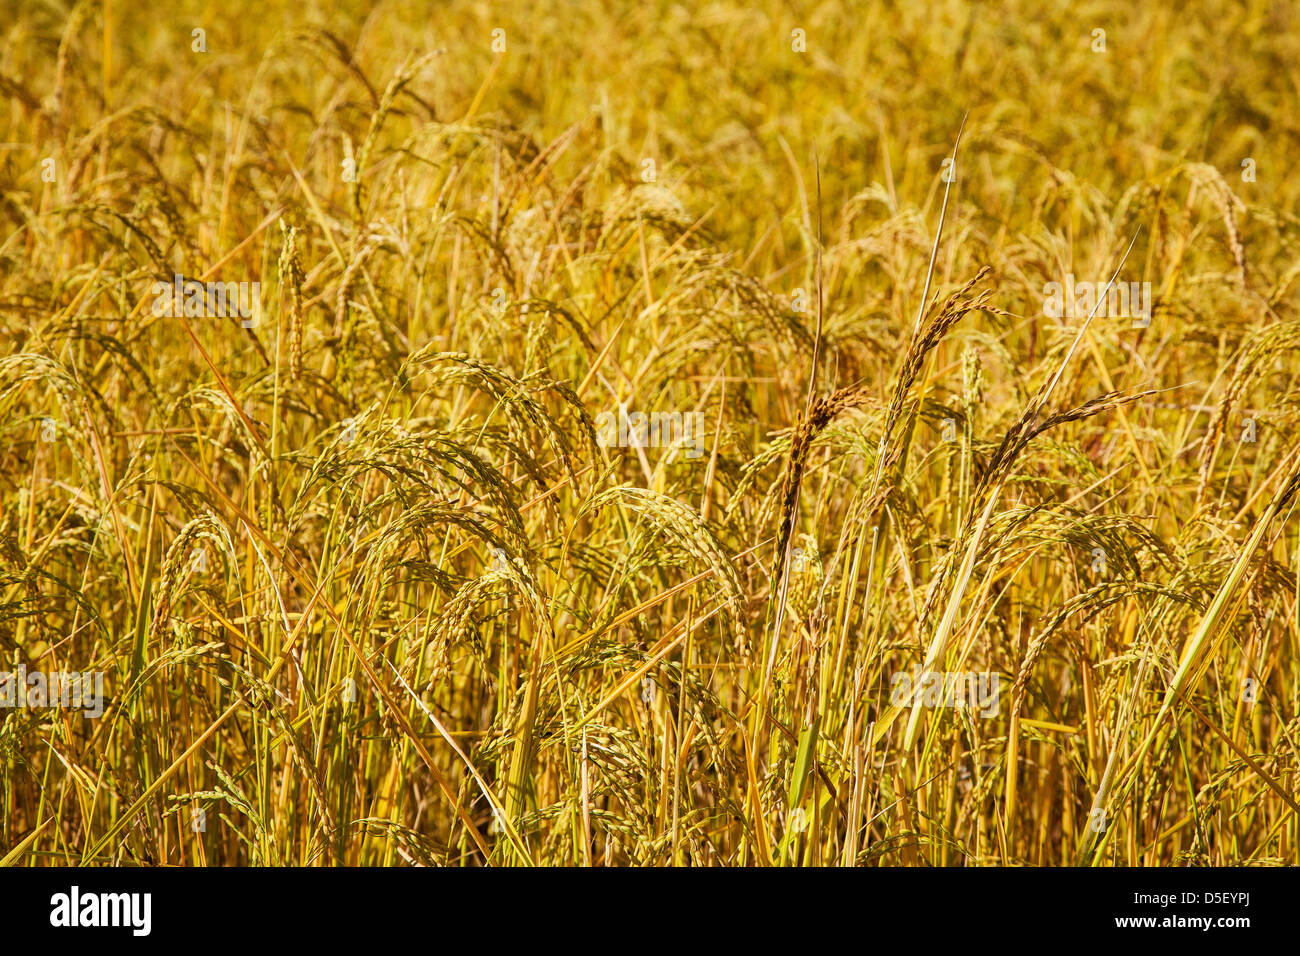 Rice field in the Punakha Valley. Bhutan. - Stock Image